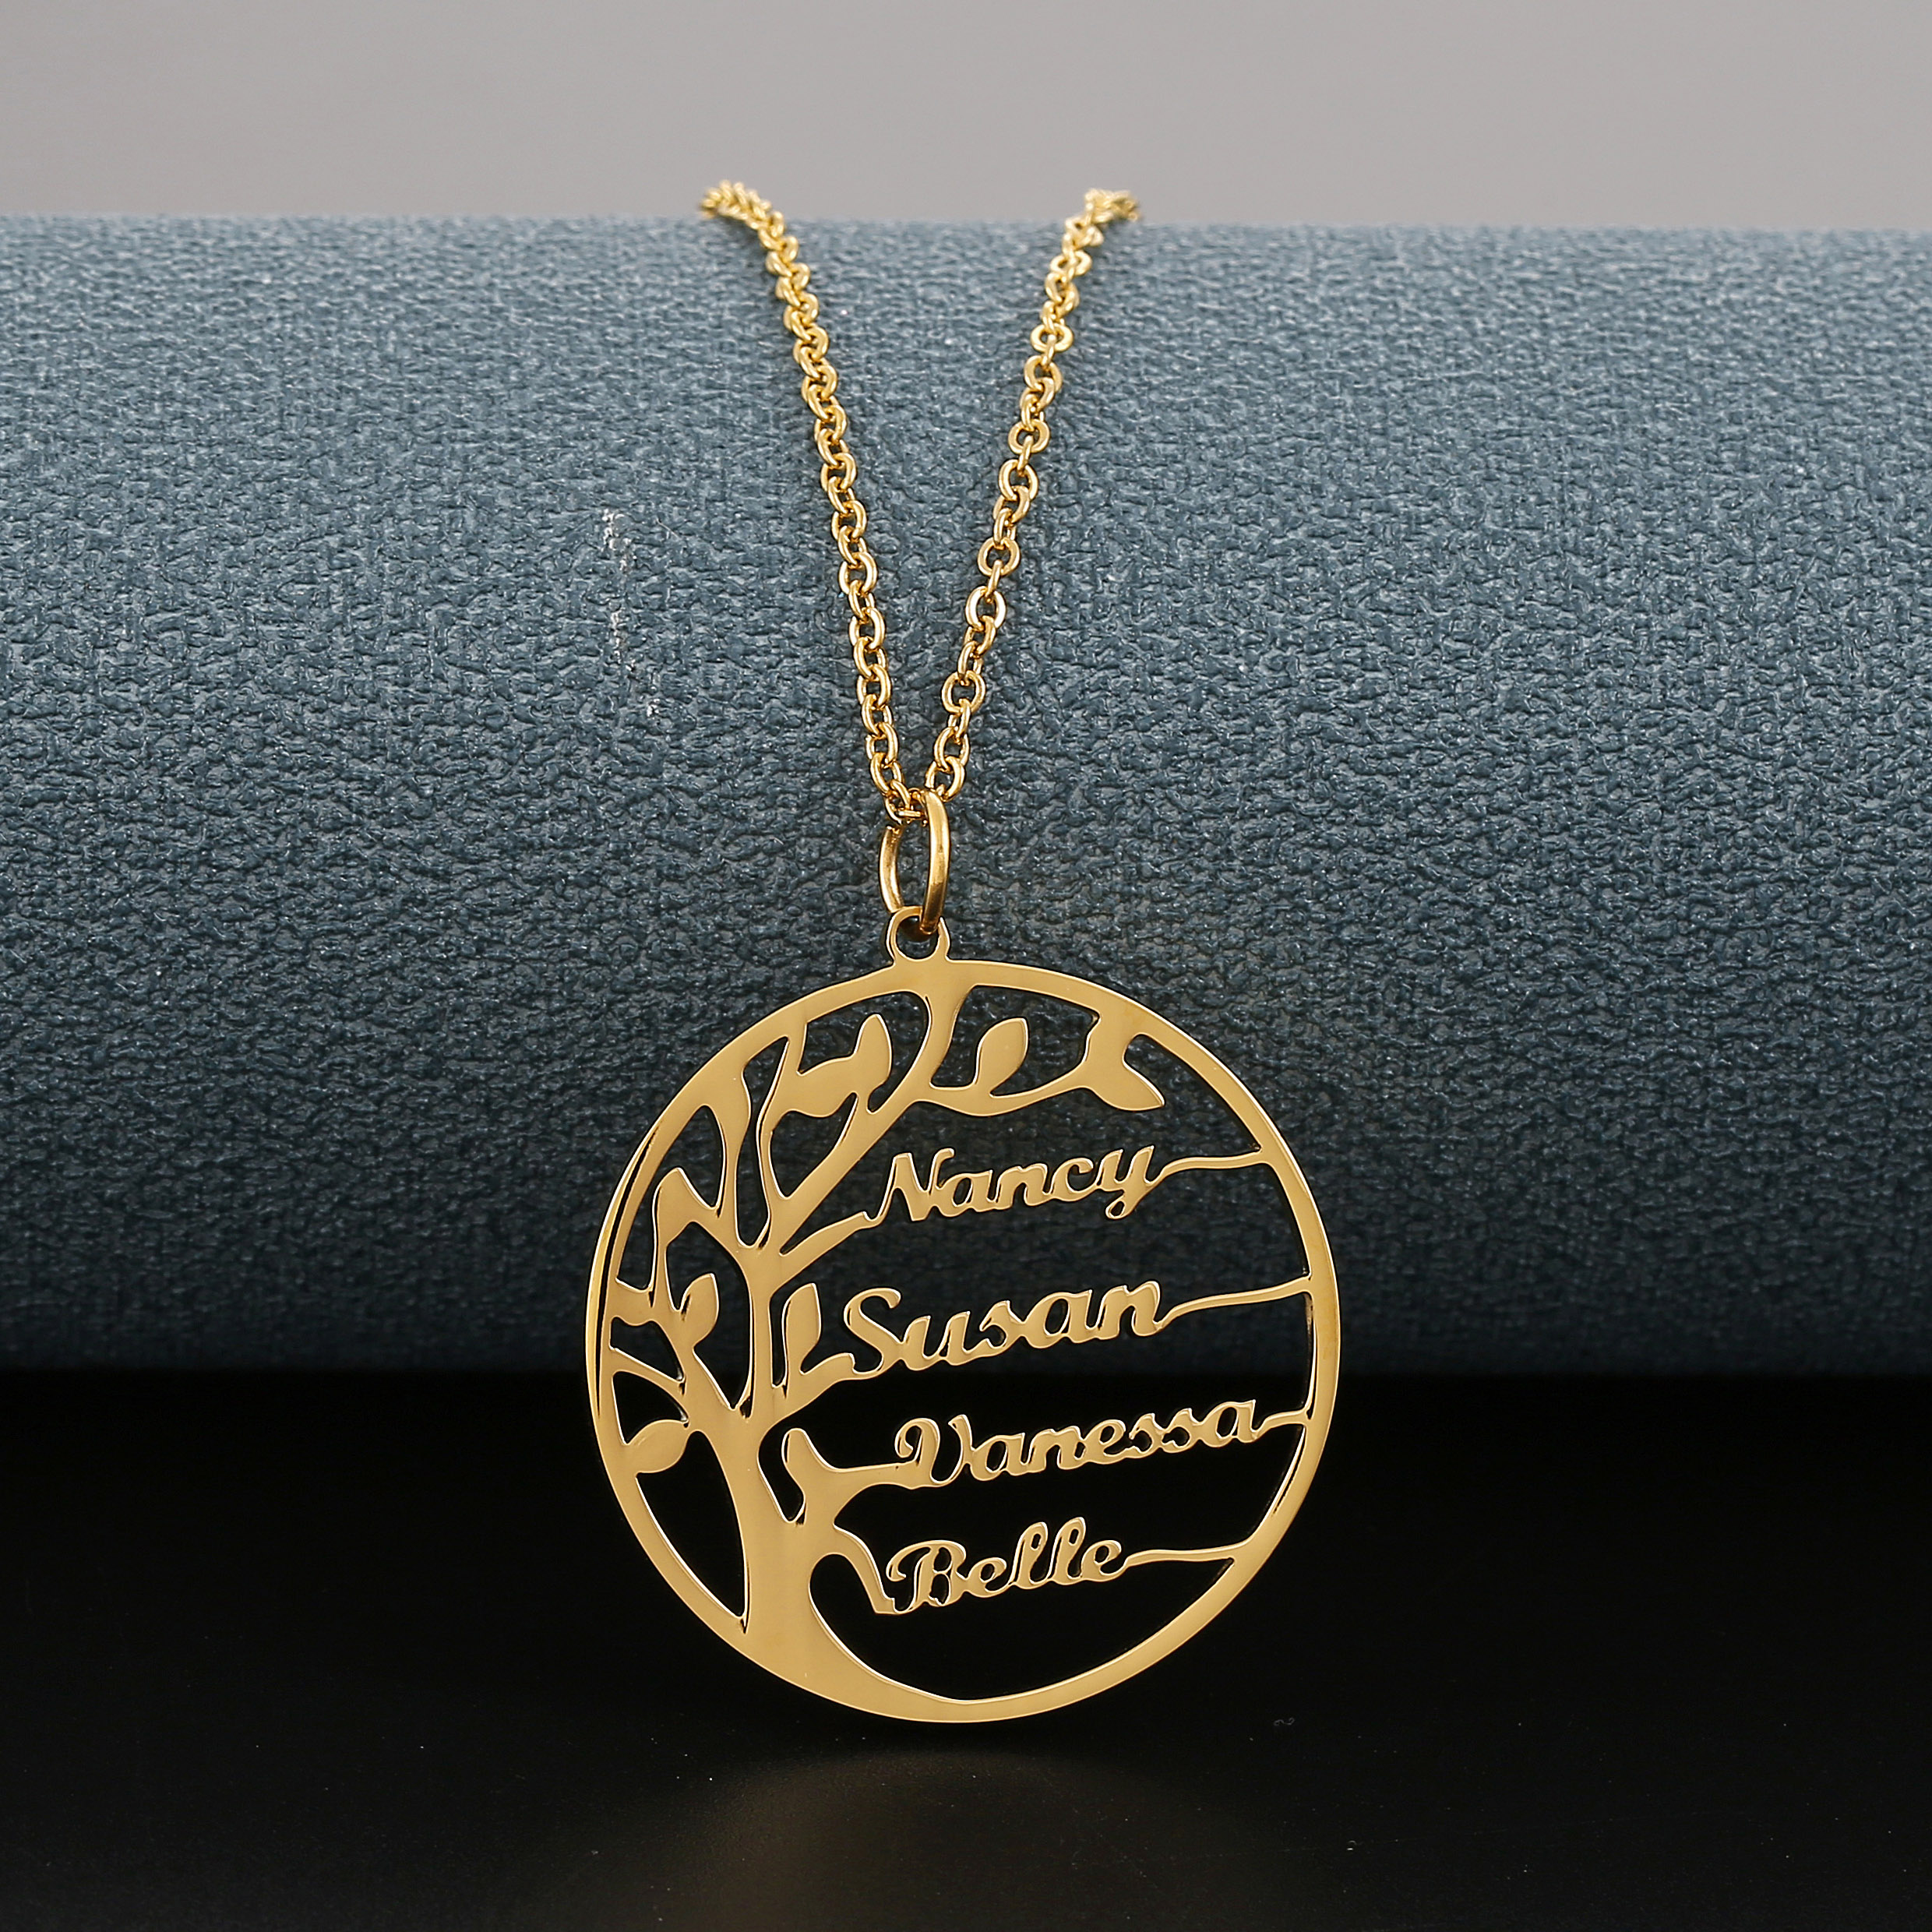 Custom Name Necklace Women Tree of Life Necklace Stainless Steel Personalized Letter Necklace Nameplate Family Jewelry Gifts